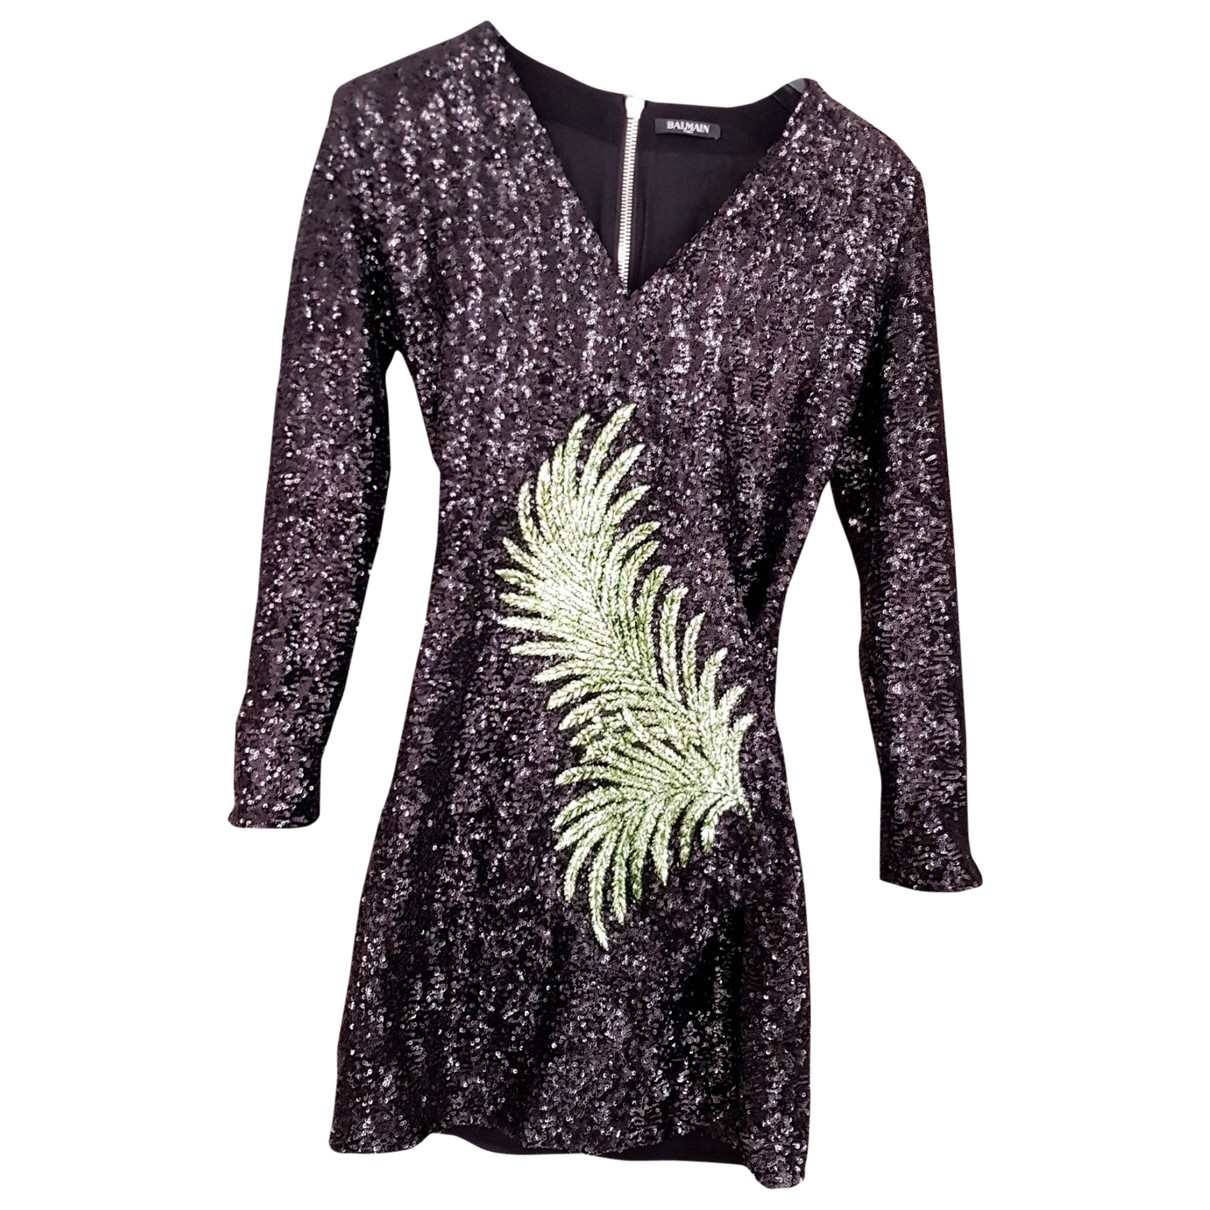 Balmain \N Black Glitter dress for Women 38 FR